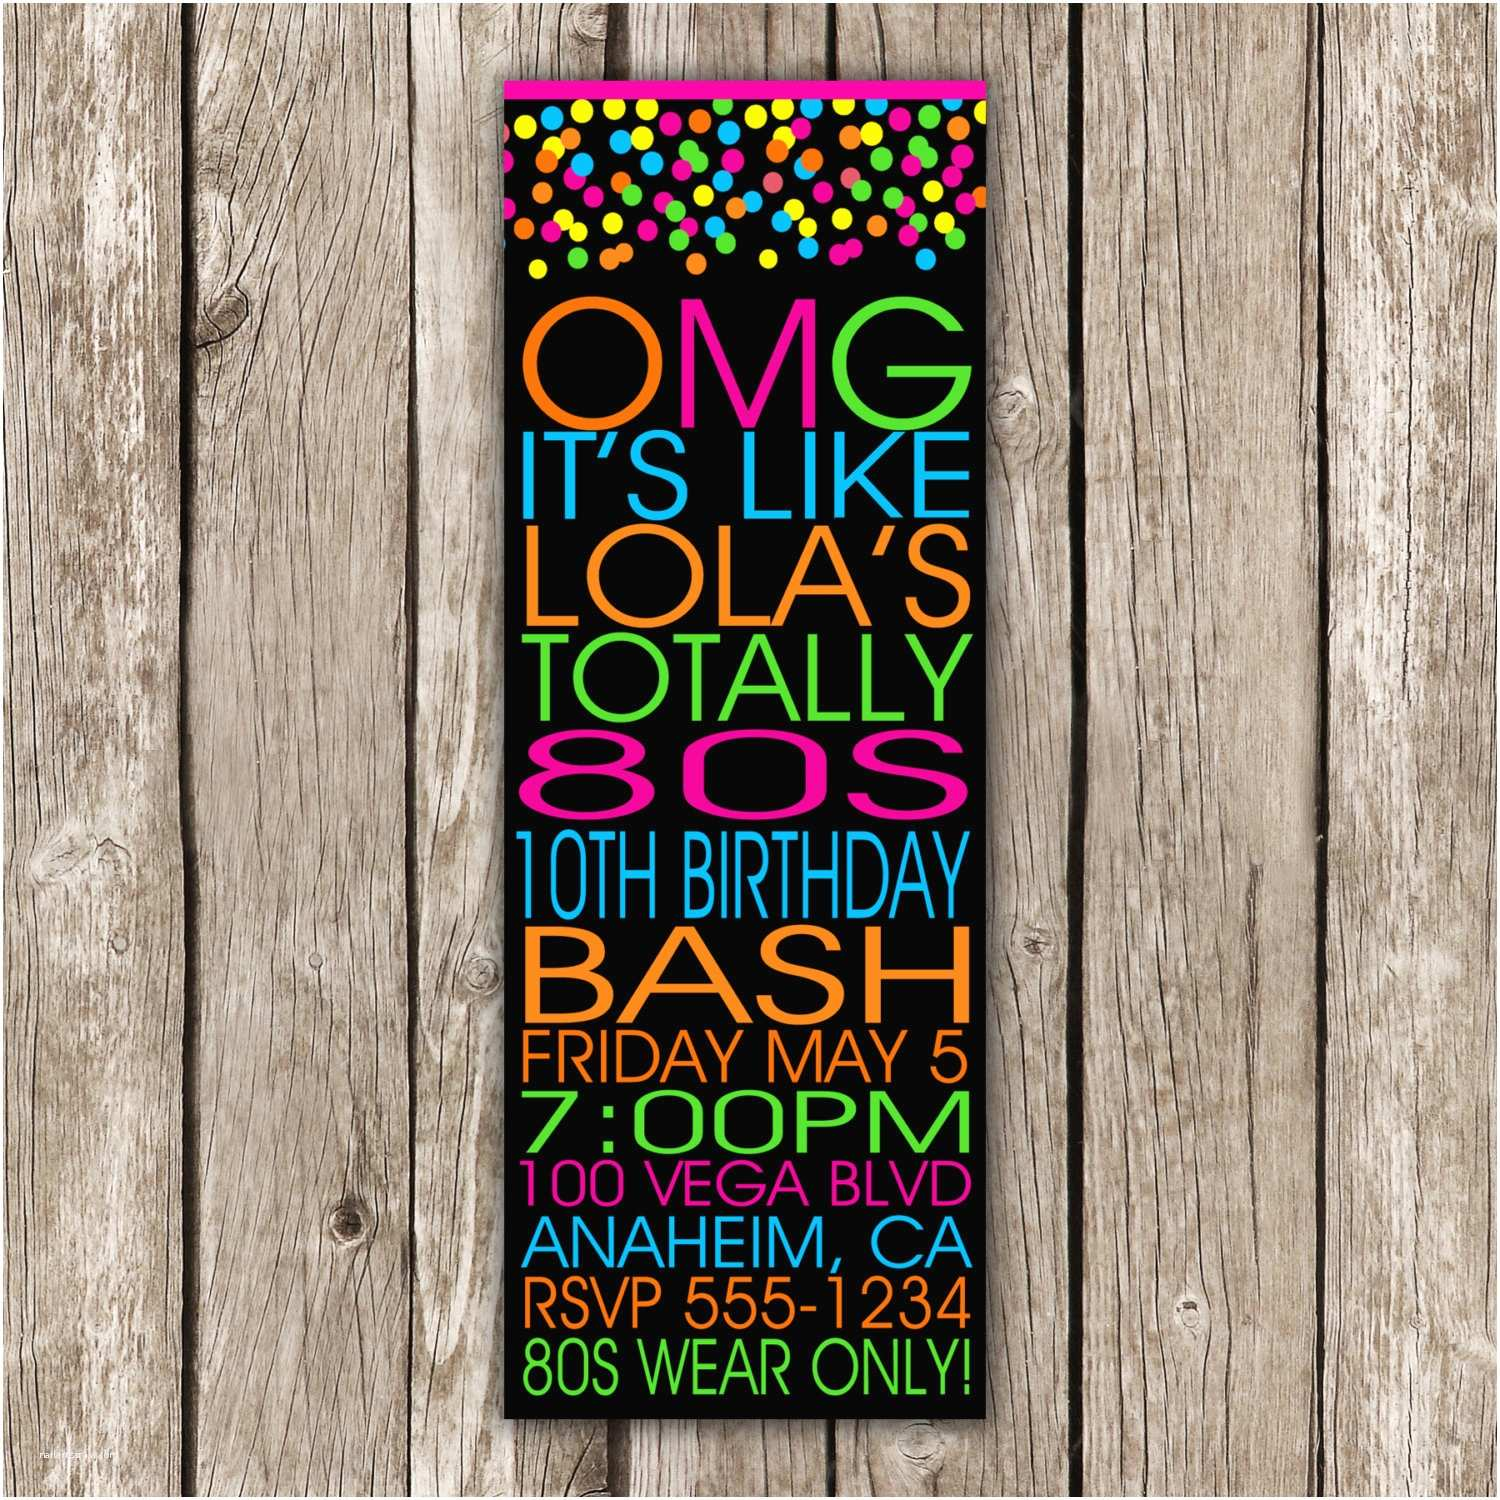 80s Party Invitations Template Free 80s Invitation Dance Party Glow Party Save the Date